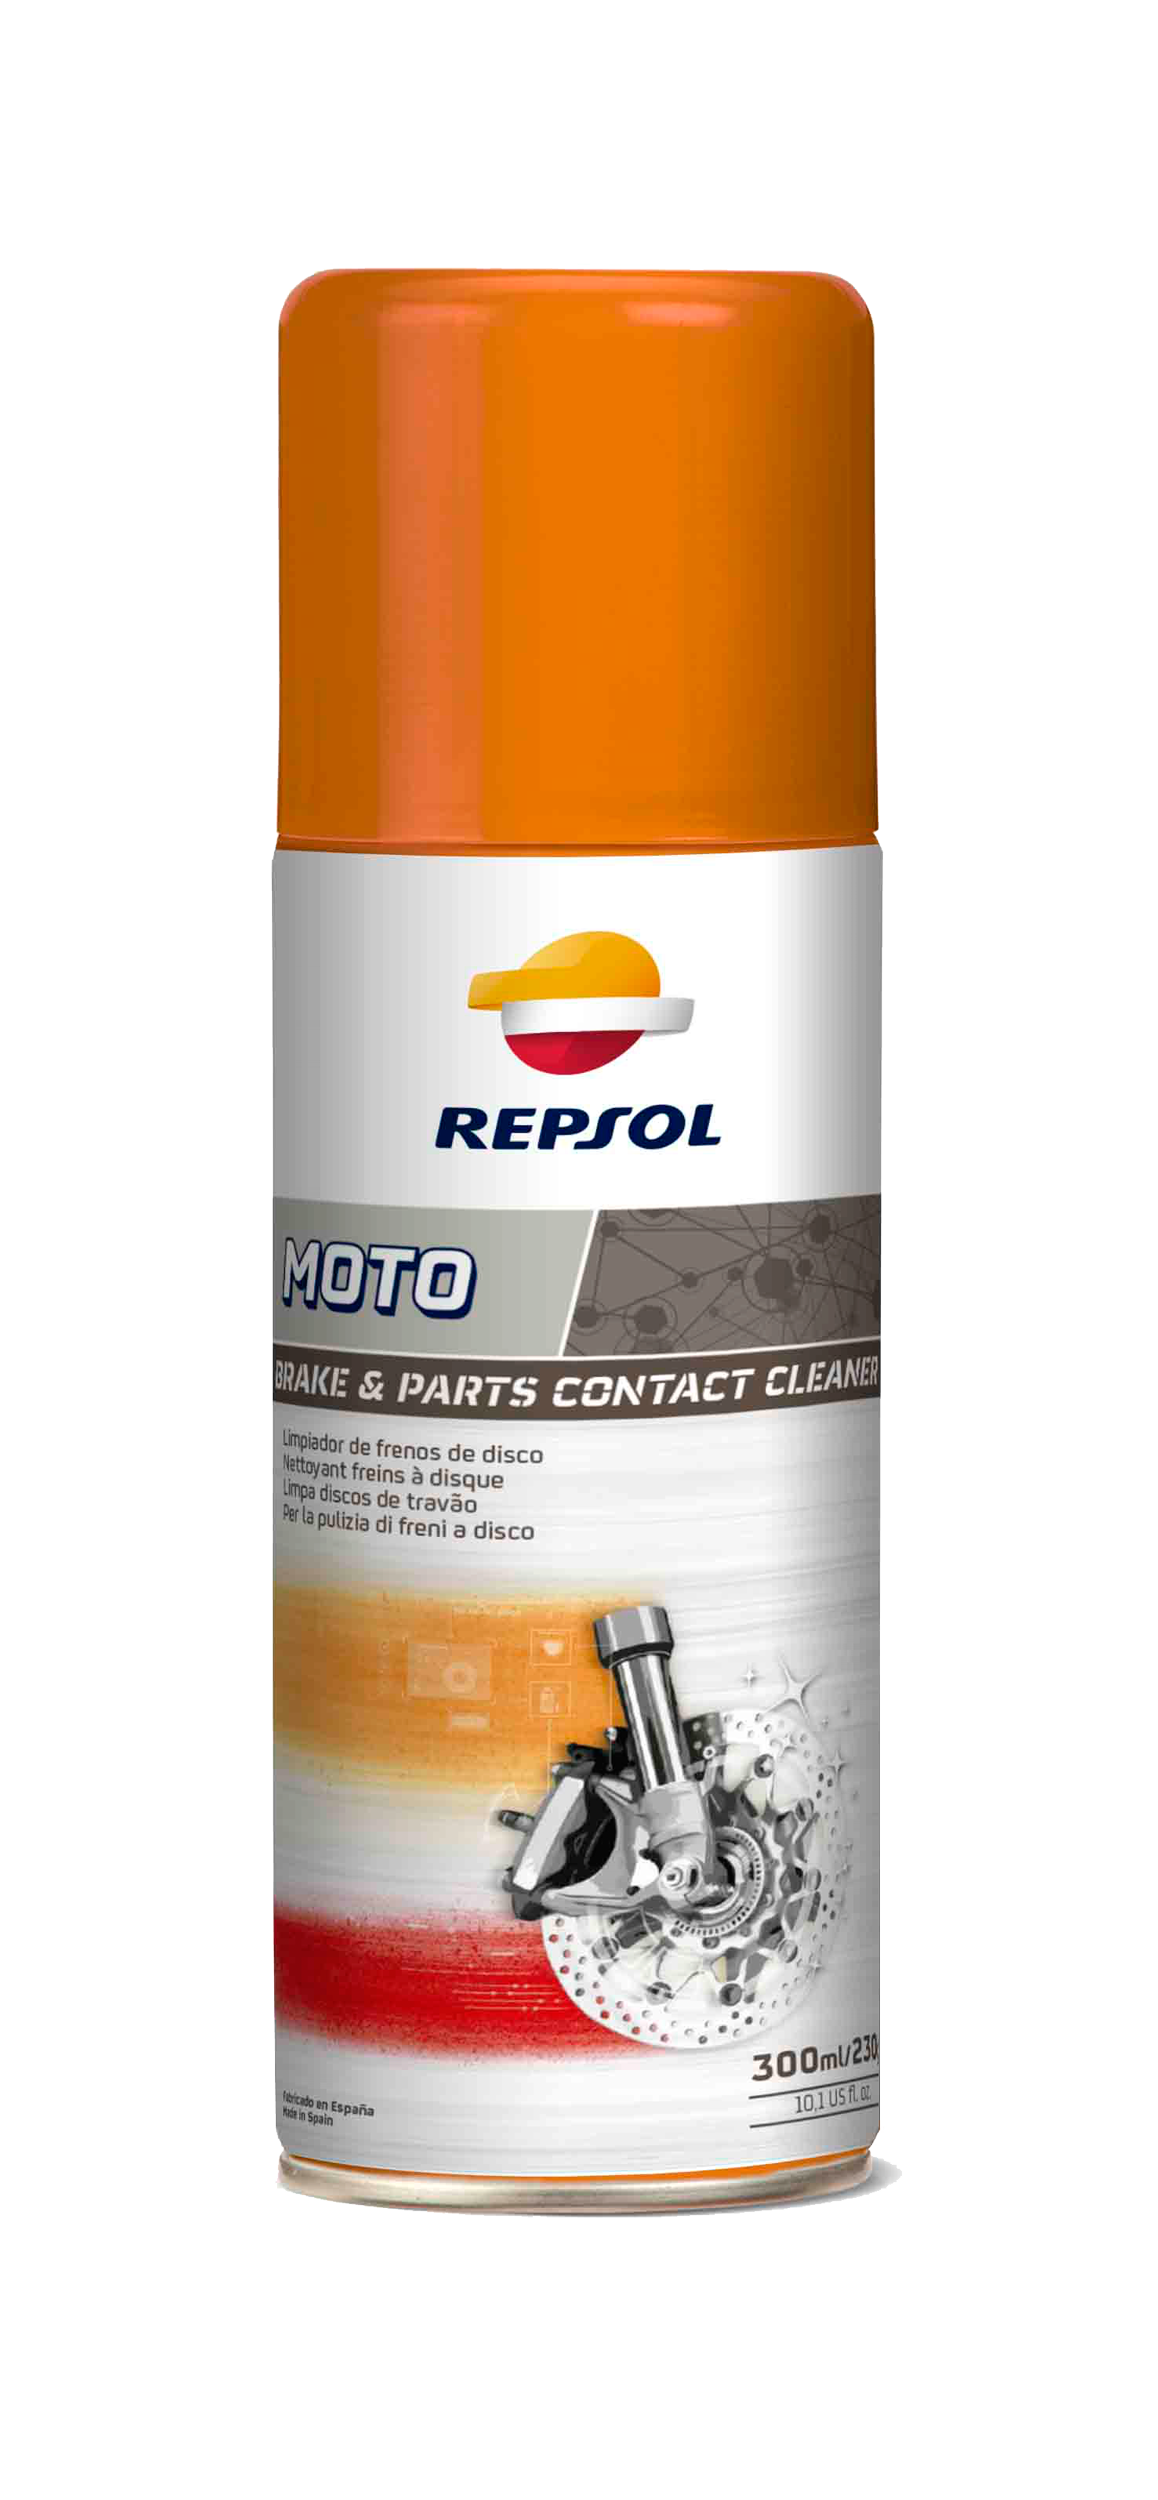 MOTO BRAKE & PARTS CONTACT CLEANER